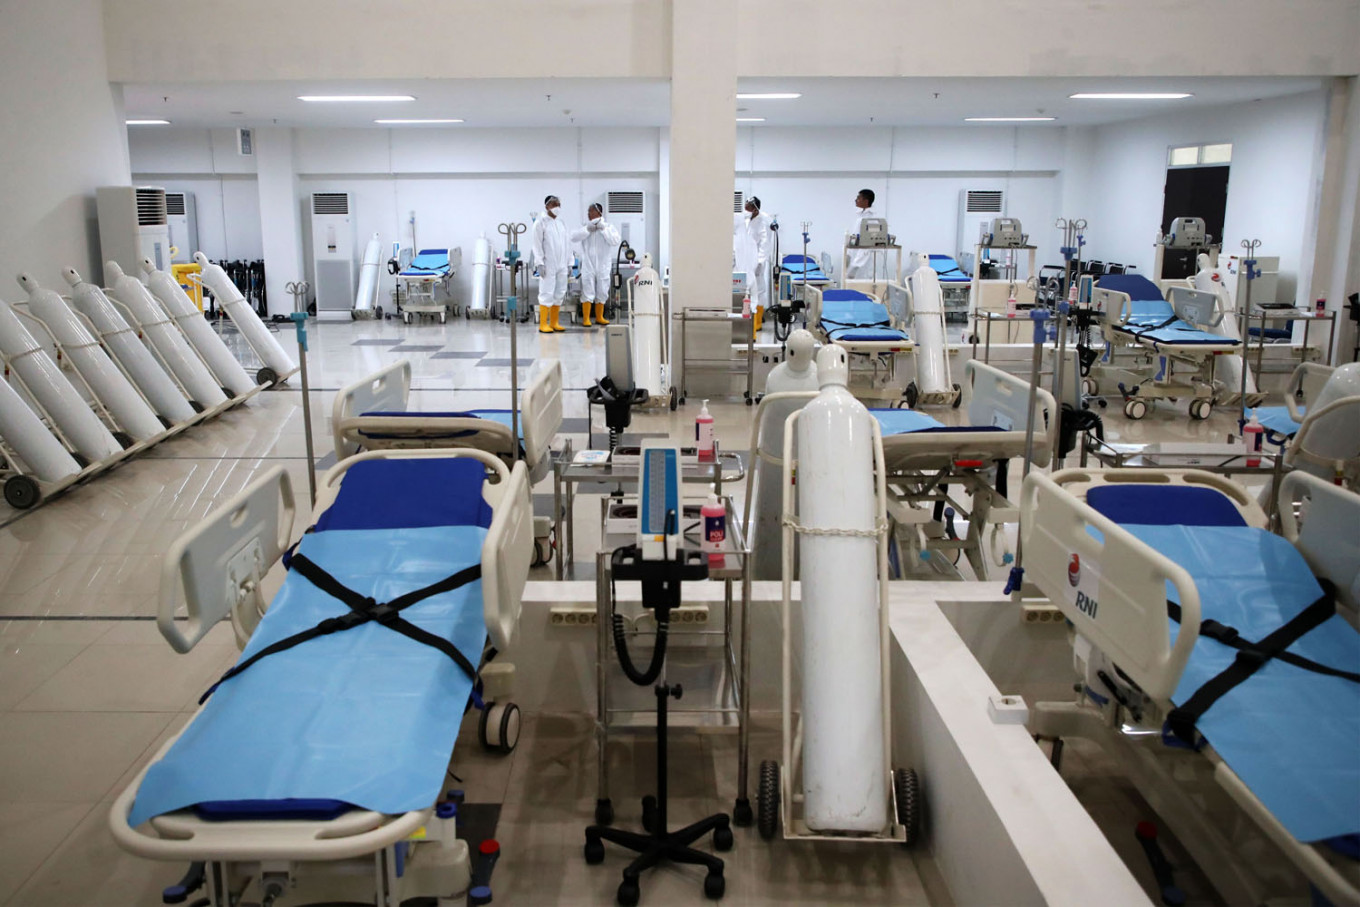 Jakarta's COVID-19 hospitals seek safeguards for employees